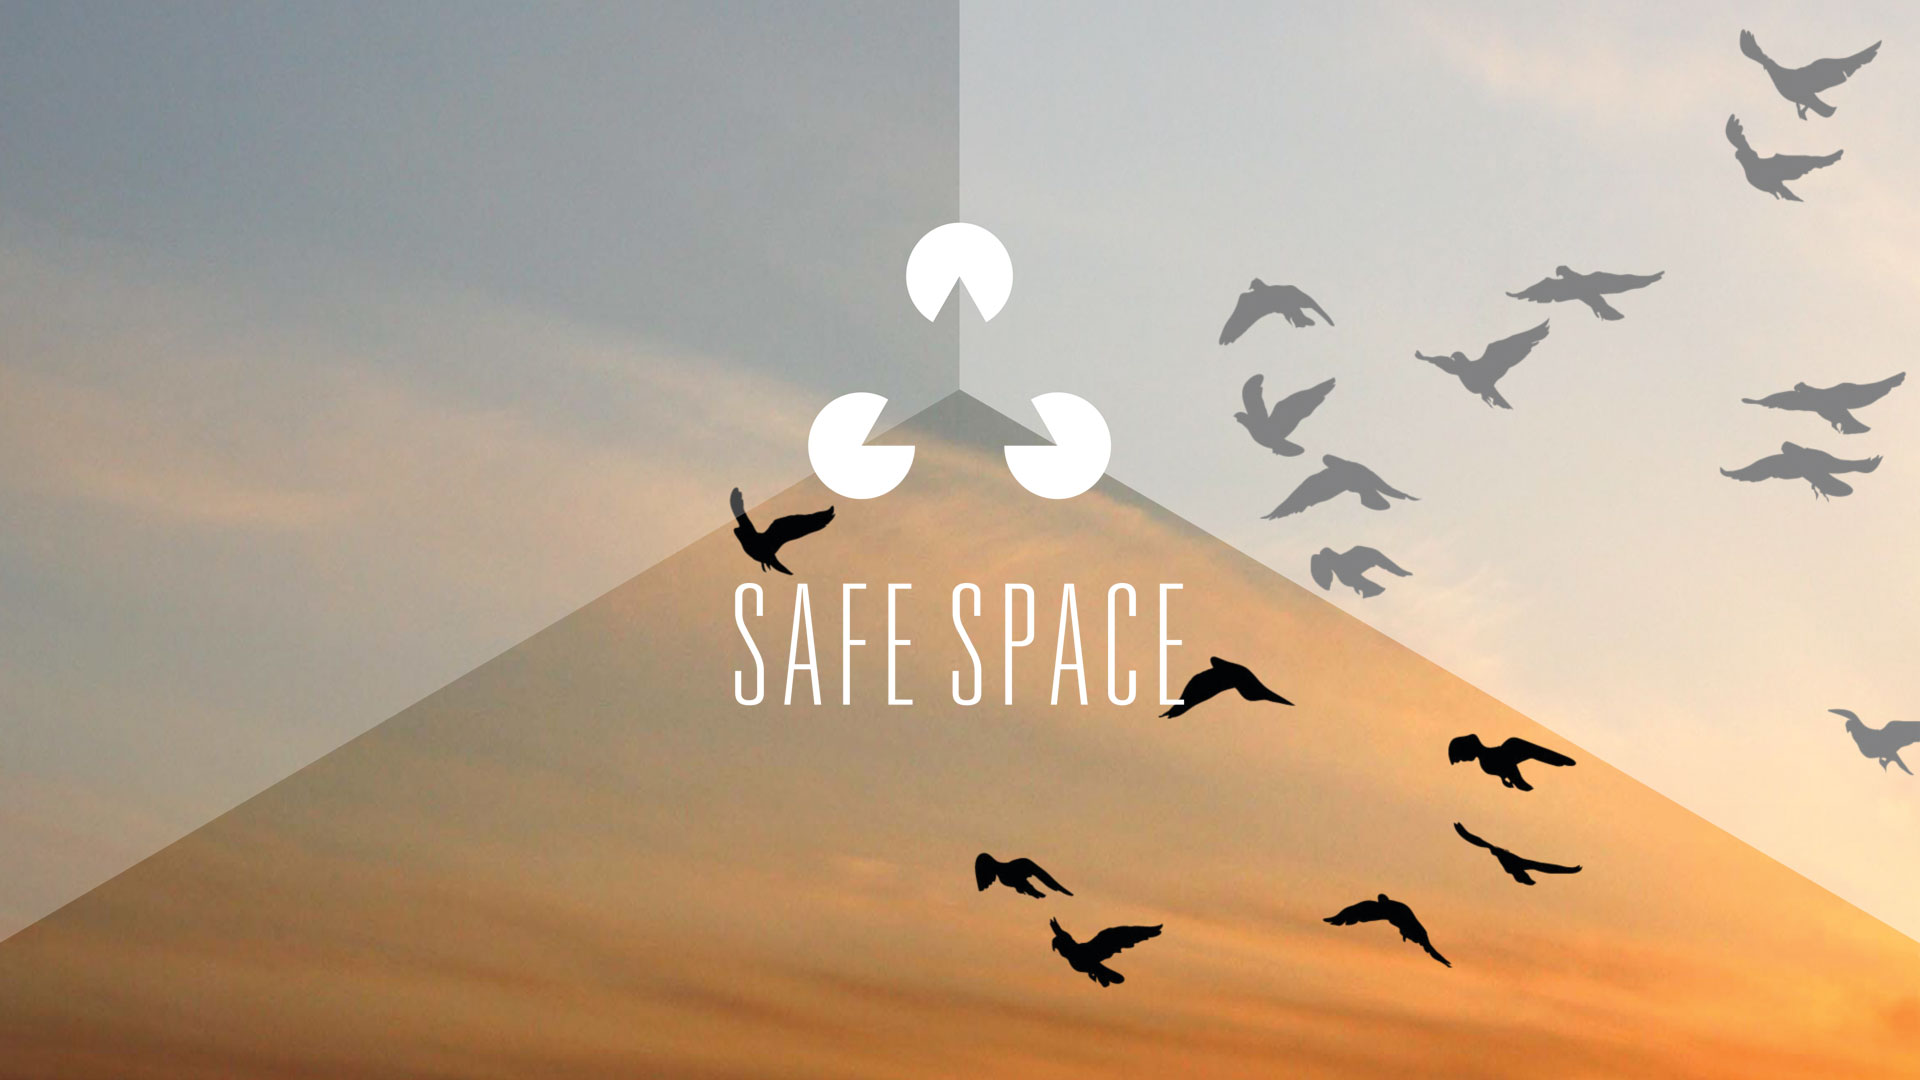 Safe Space, visual identity